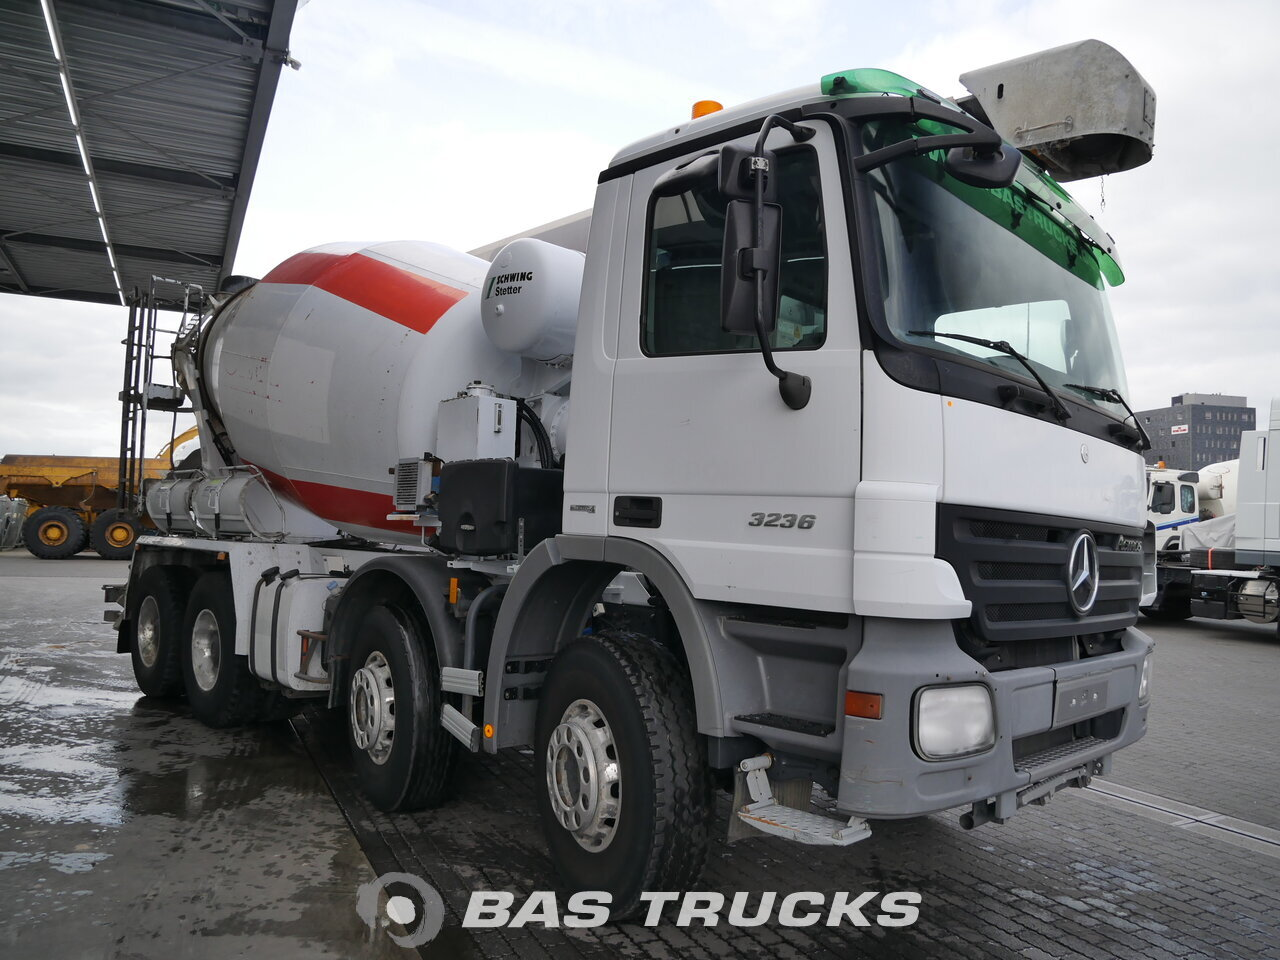 photo de Occasion Camion Mercedes Actros 3236 B 8X4 2009